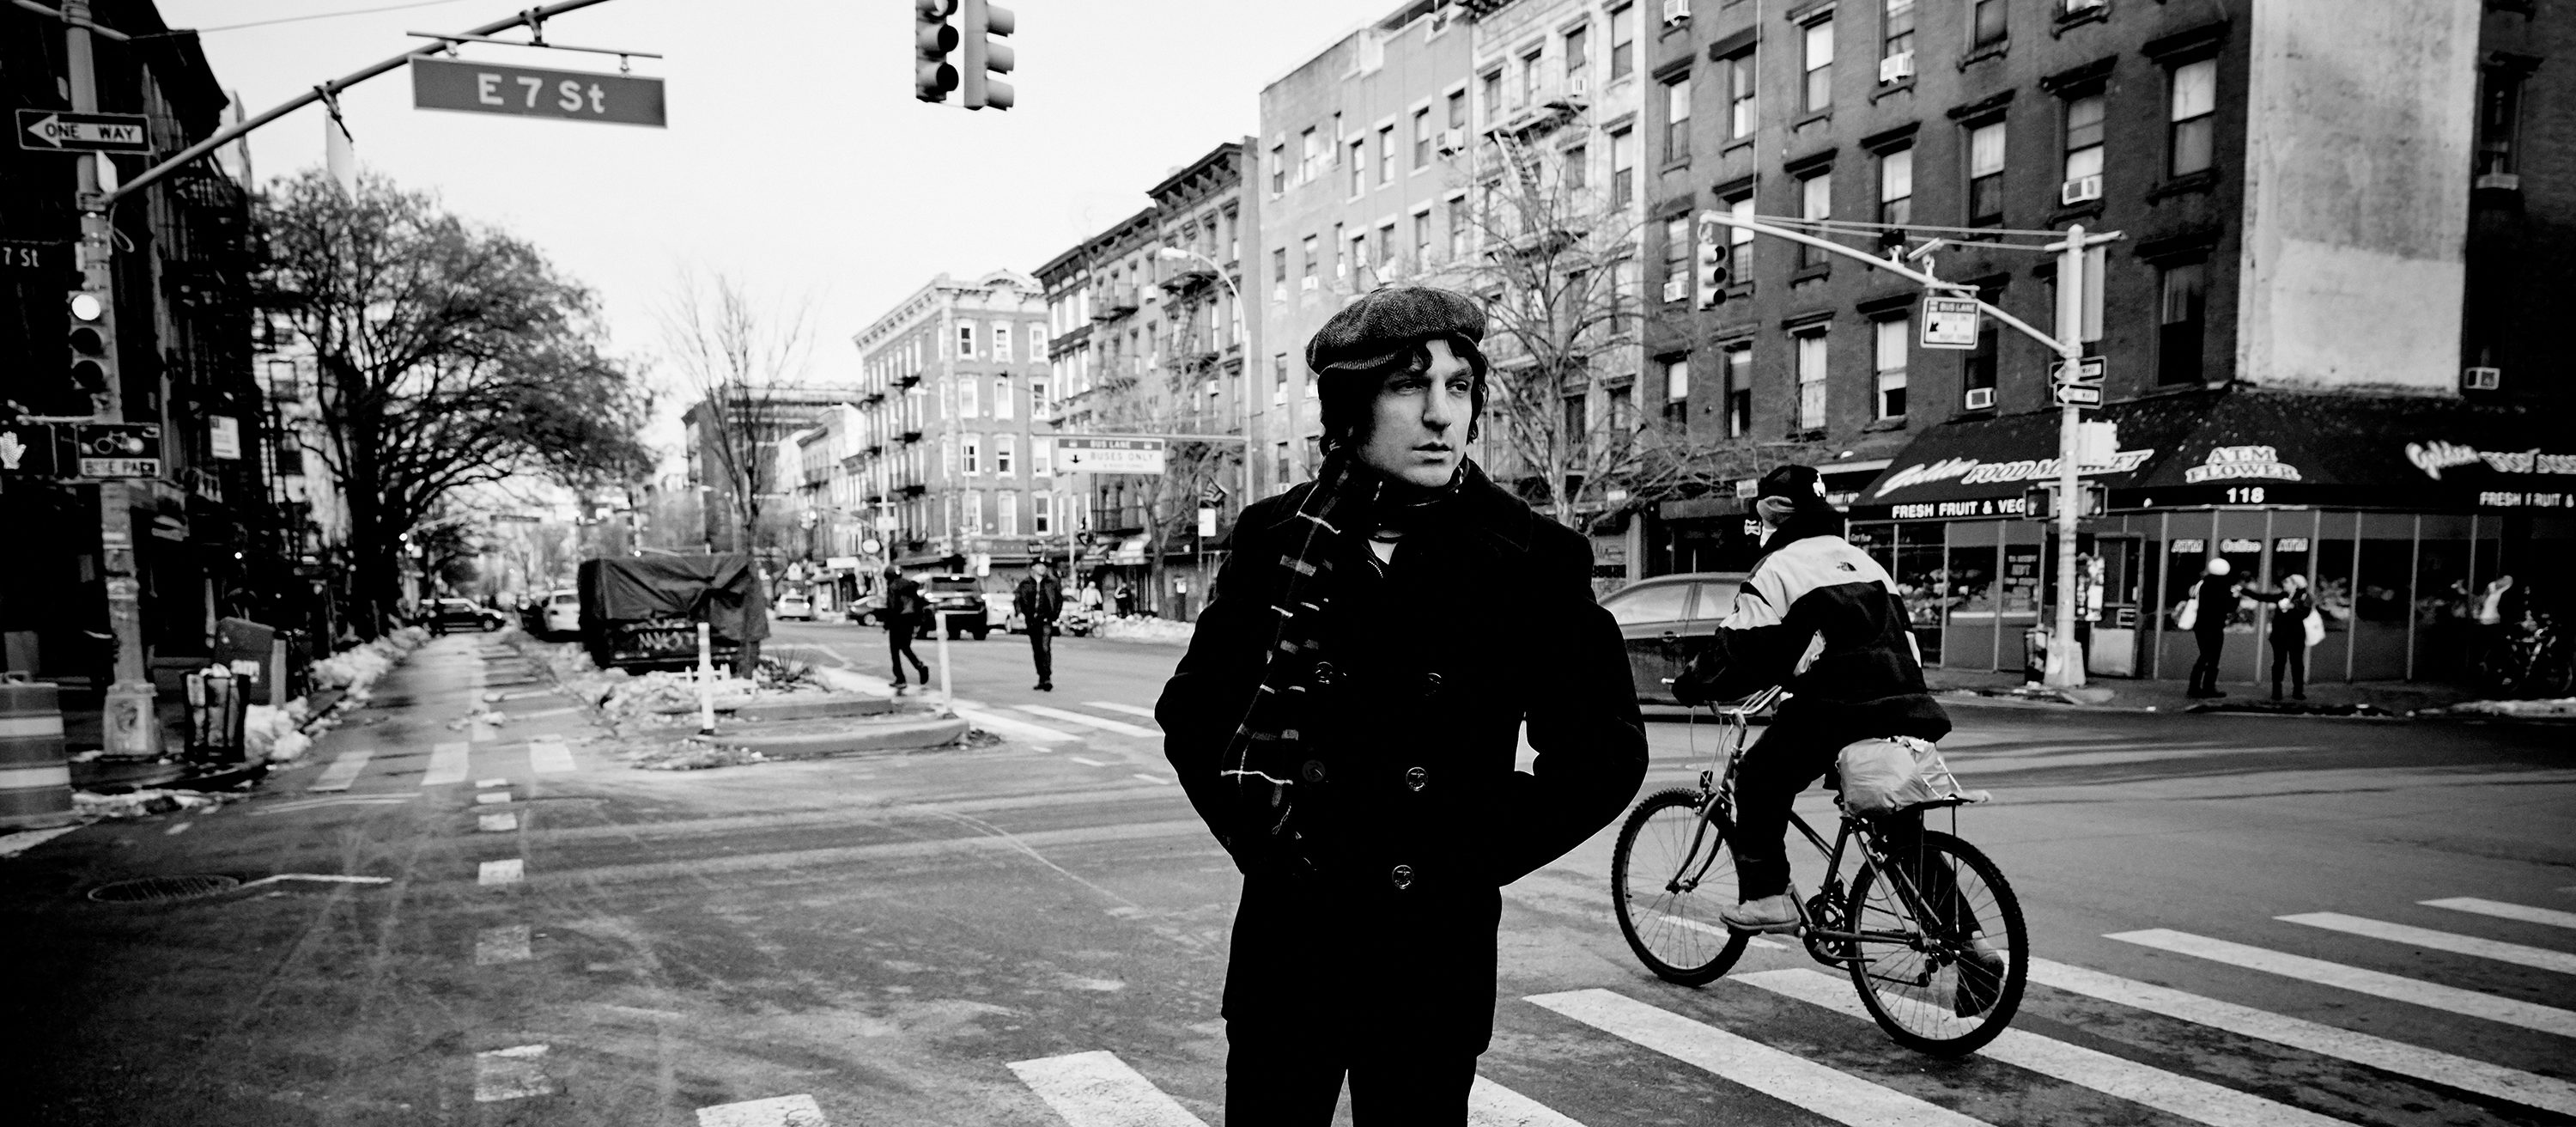 Plaat van de week: Jesse Malin – Don't Let Them Take You Down